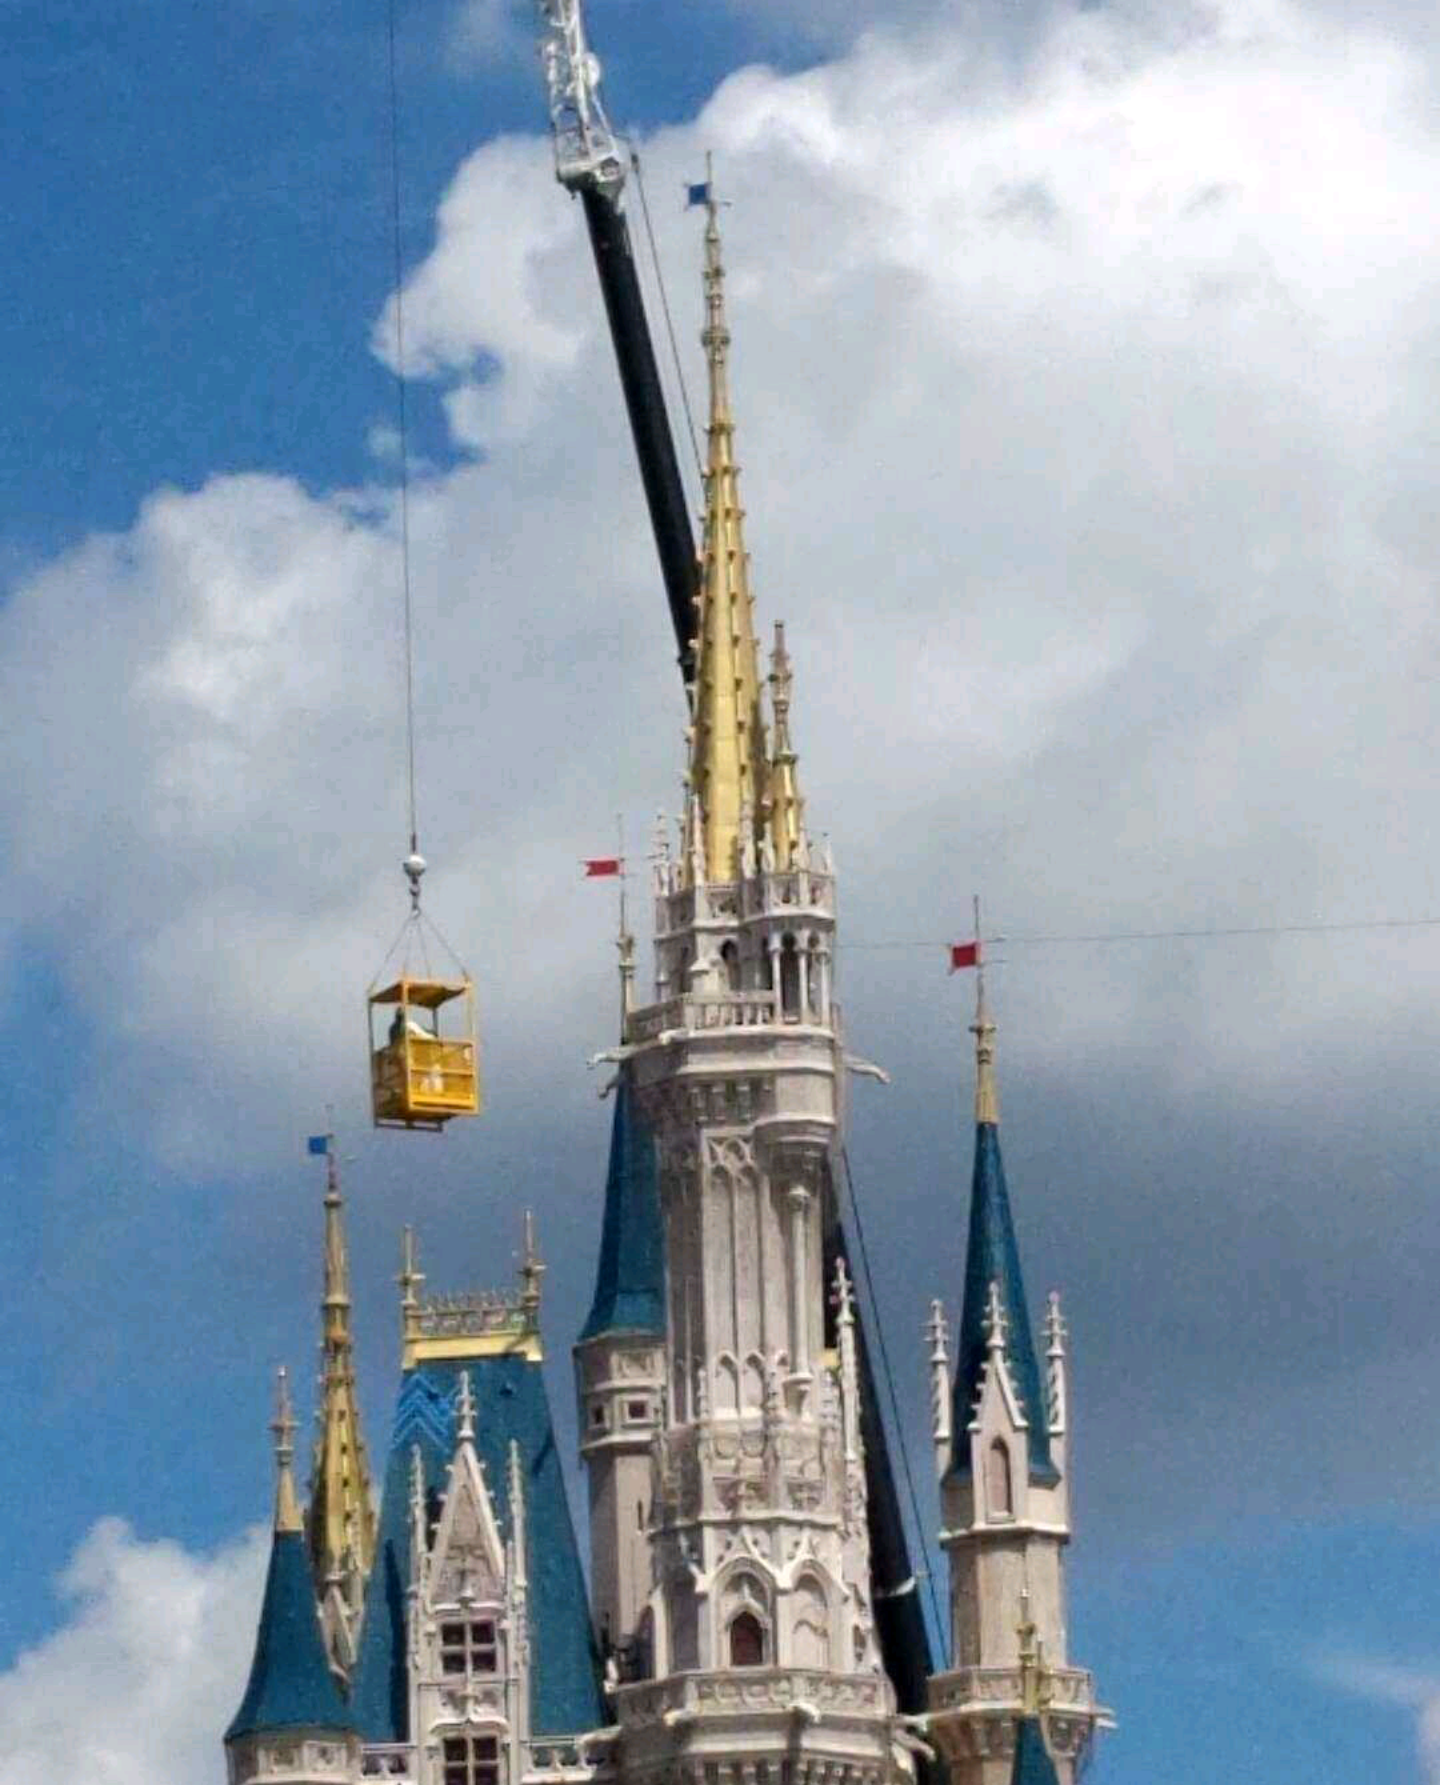 The magic of Disney is multiplied by the crane rising over the castle